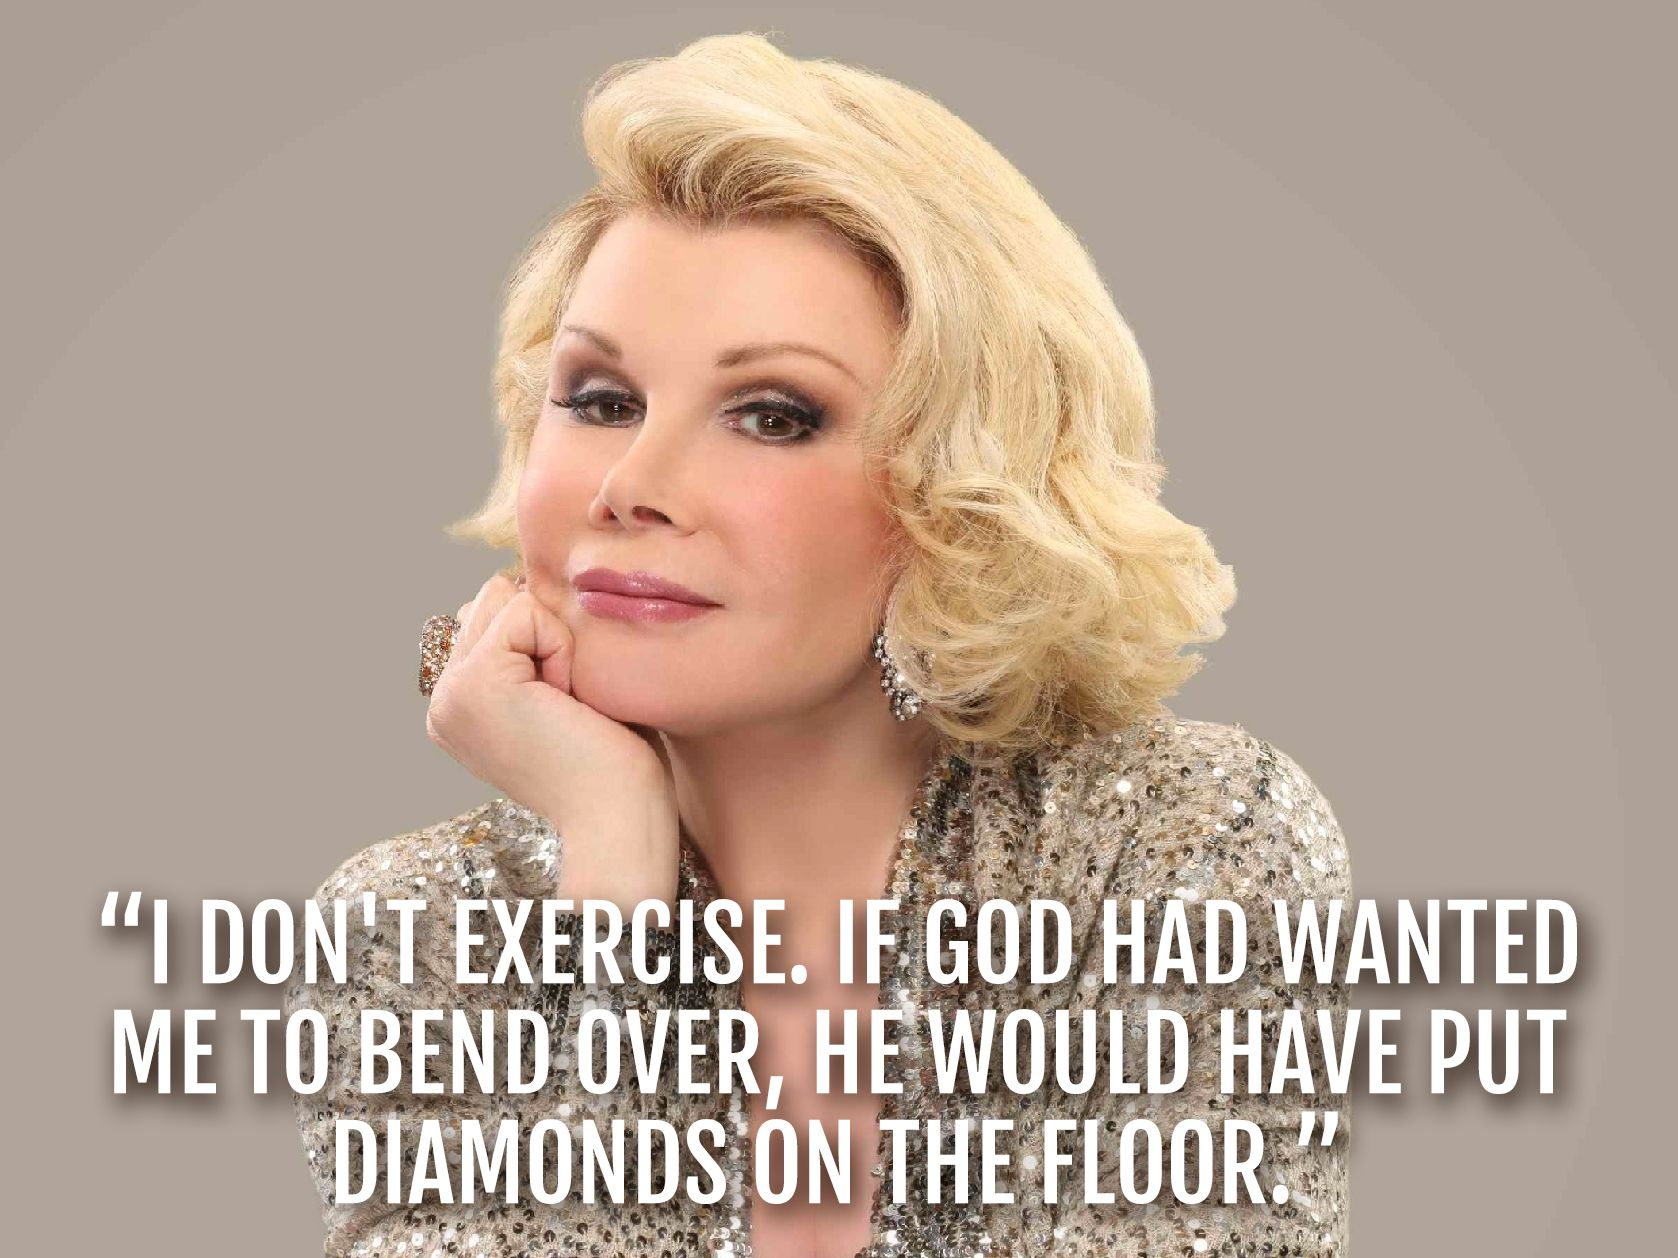 The 10 Best Joan Rivers Quotes of All Time | Joan rivers ...